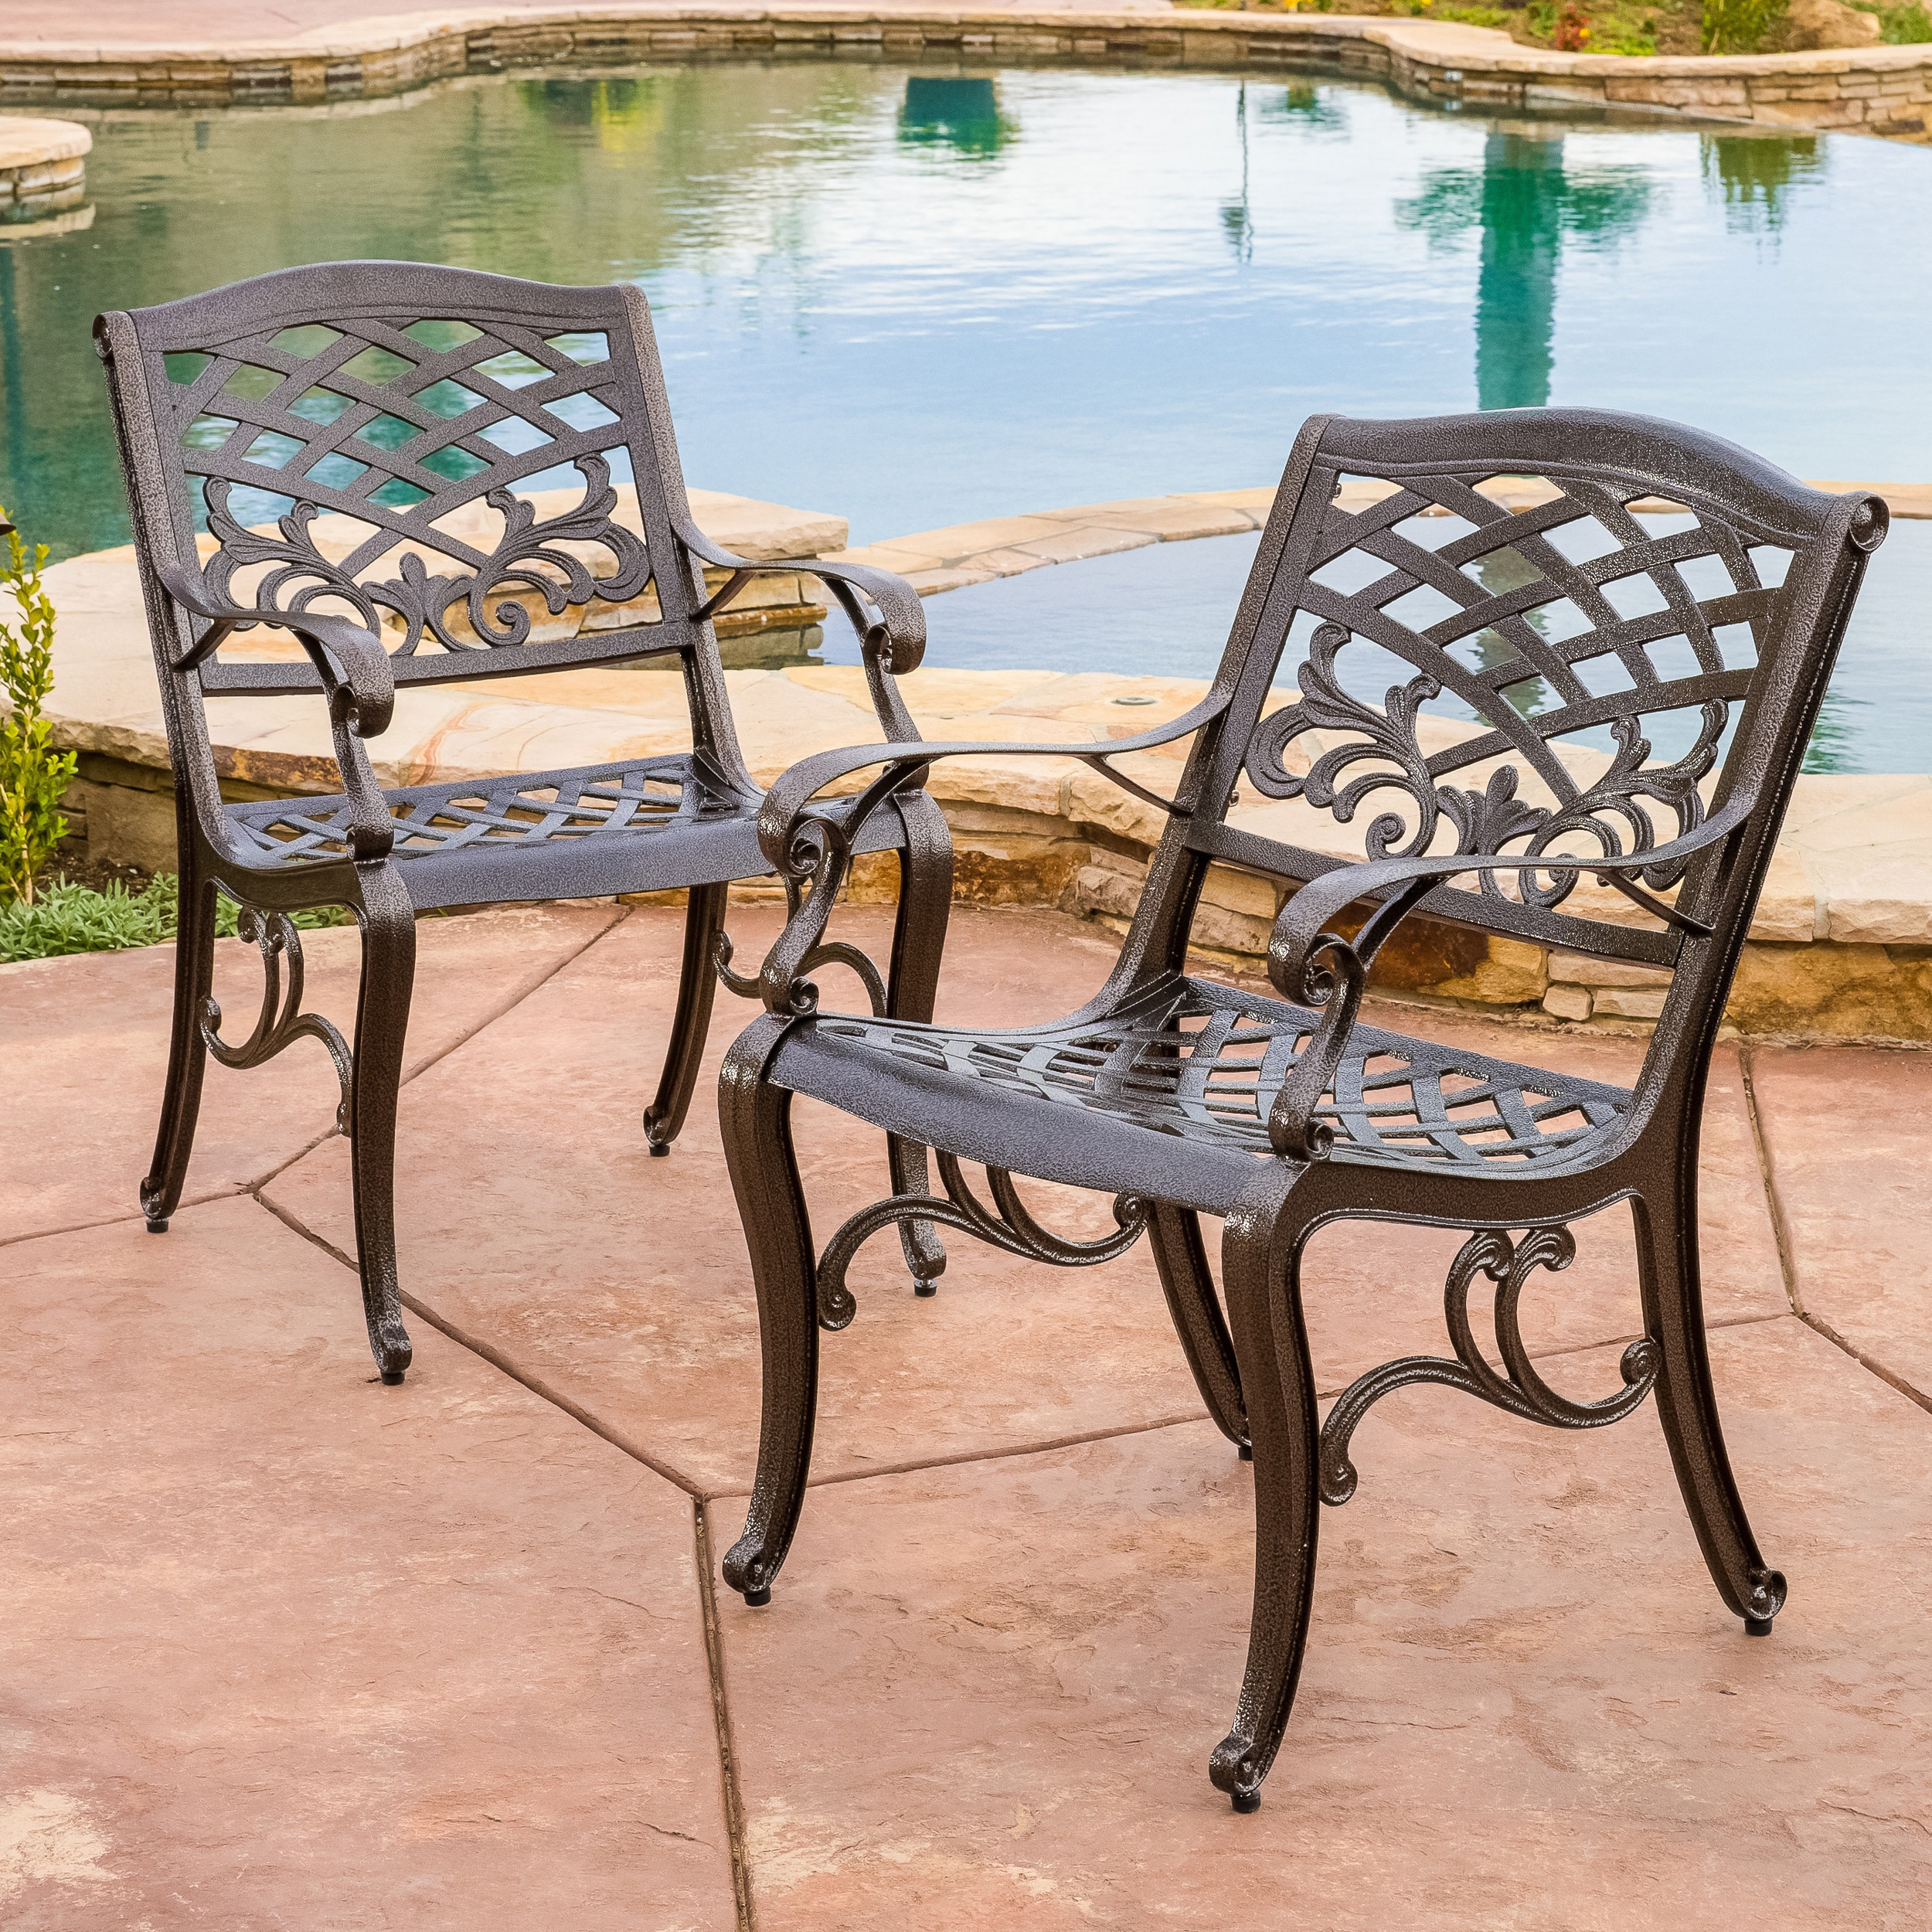 Tremendous Sarasota Cast Aluminum Outdoor Chair By Christopher Knight Home Set Of 2 Inzonedesignstudio Interior Chair Design Inzonedesignstudiocom